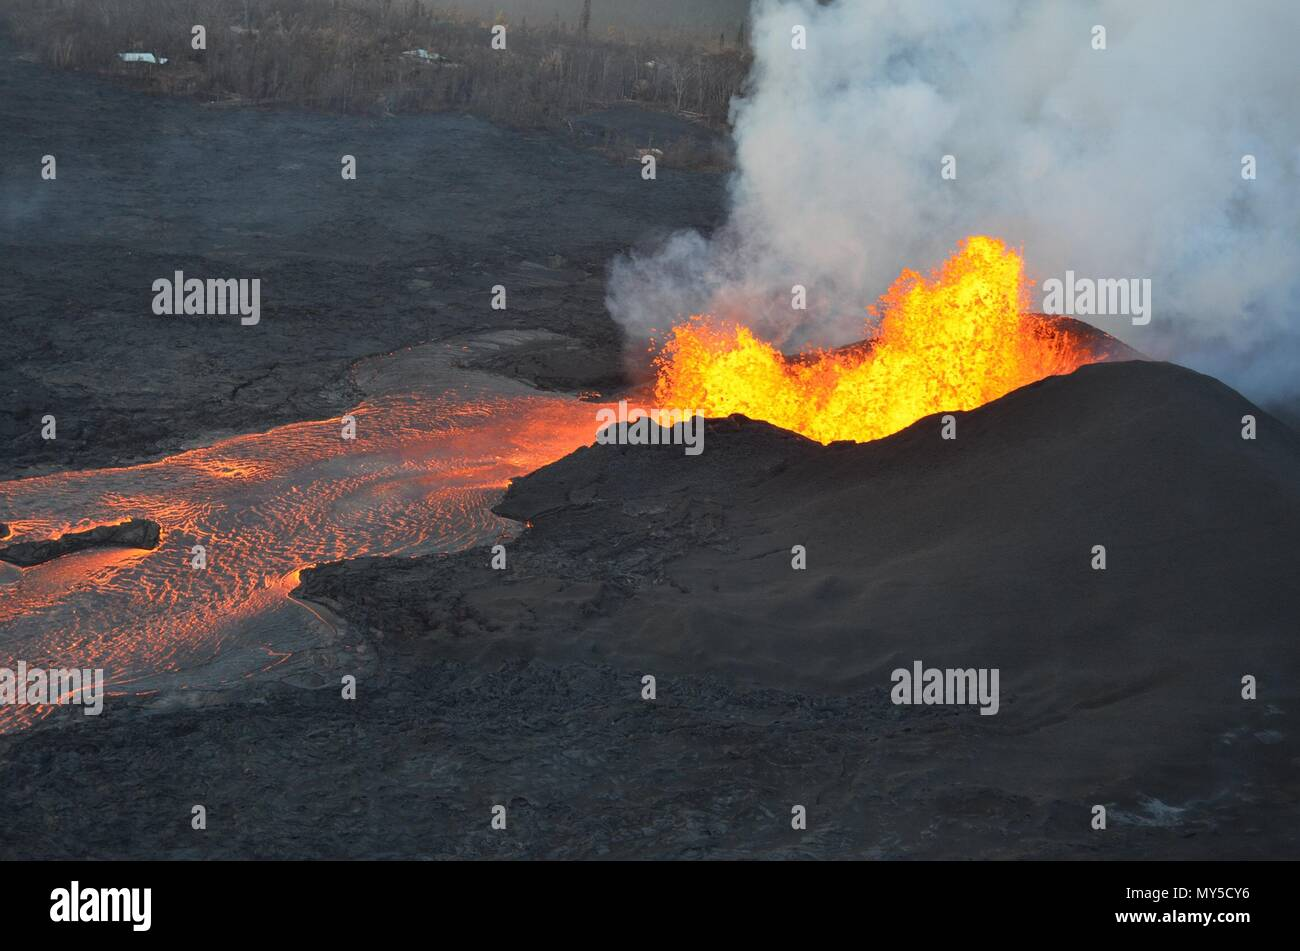 A massive lava fountain spewing magma 160 feet into the air from fissure 8 at the corner of Nohea and Leilani caused by the eruption of the Kilauea volcano June 5, 2018 in Hawaii. The recent eruption continues destroying homes, forcing evacuations and spewing lava and poison gas on the Big Island of Hawaii.Stock Photo